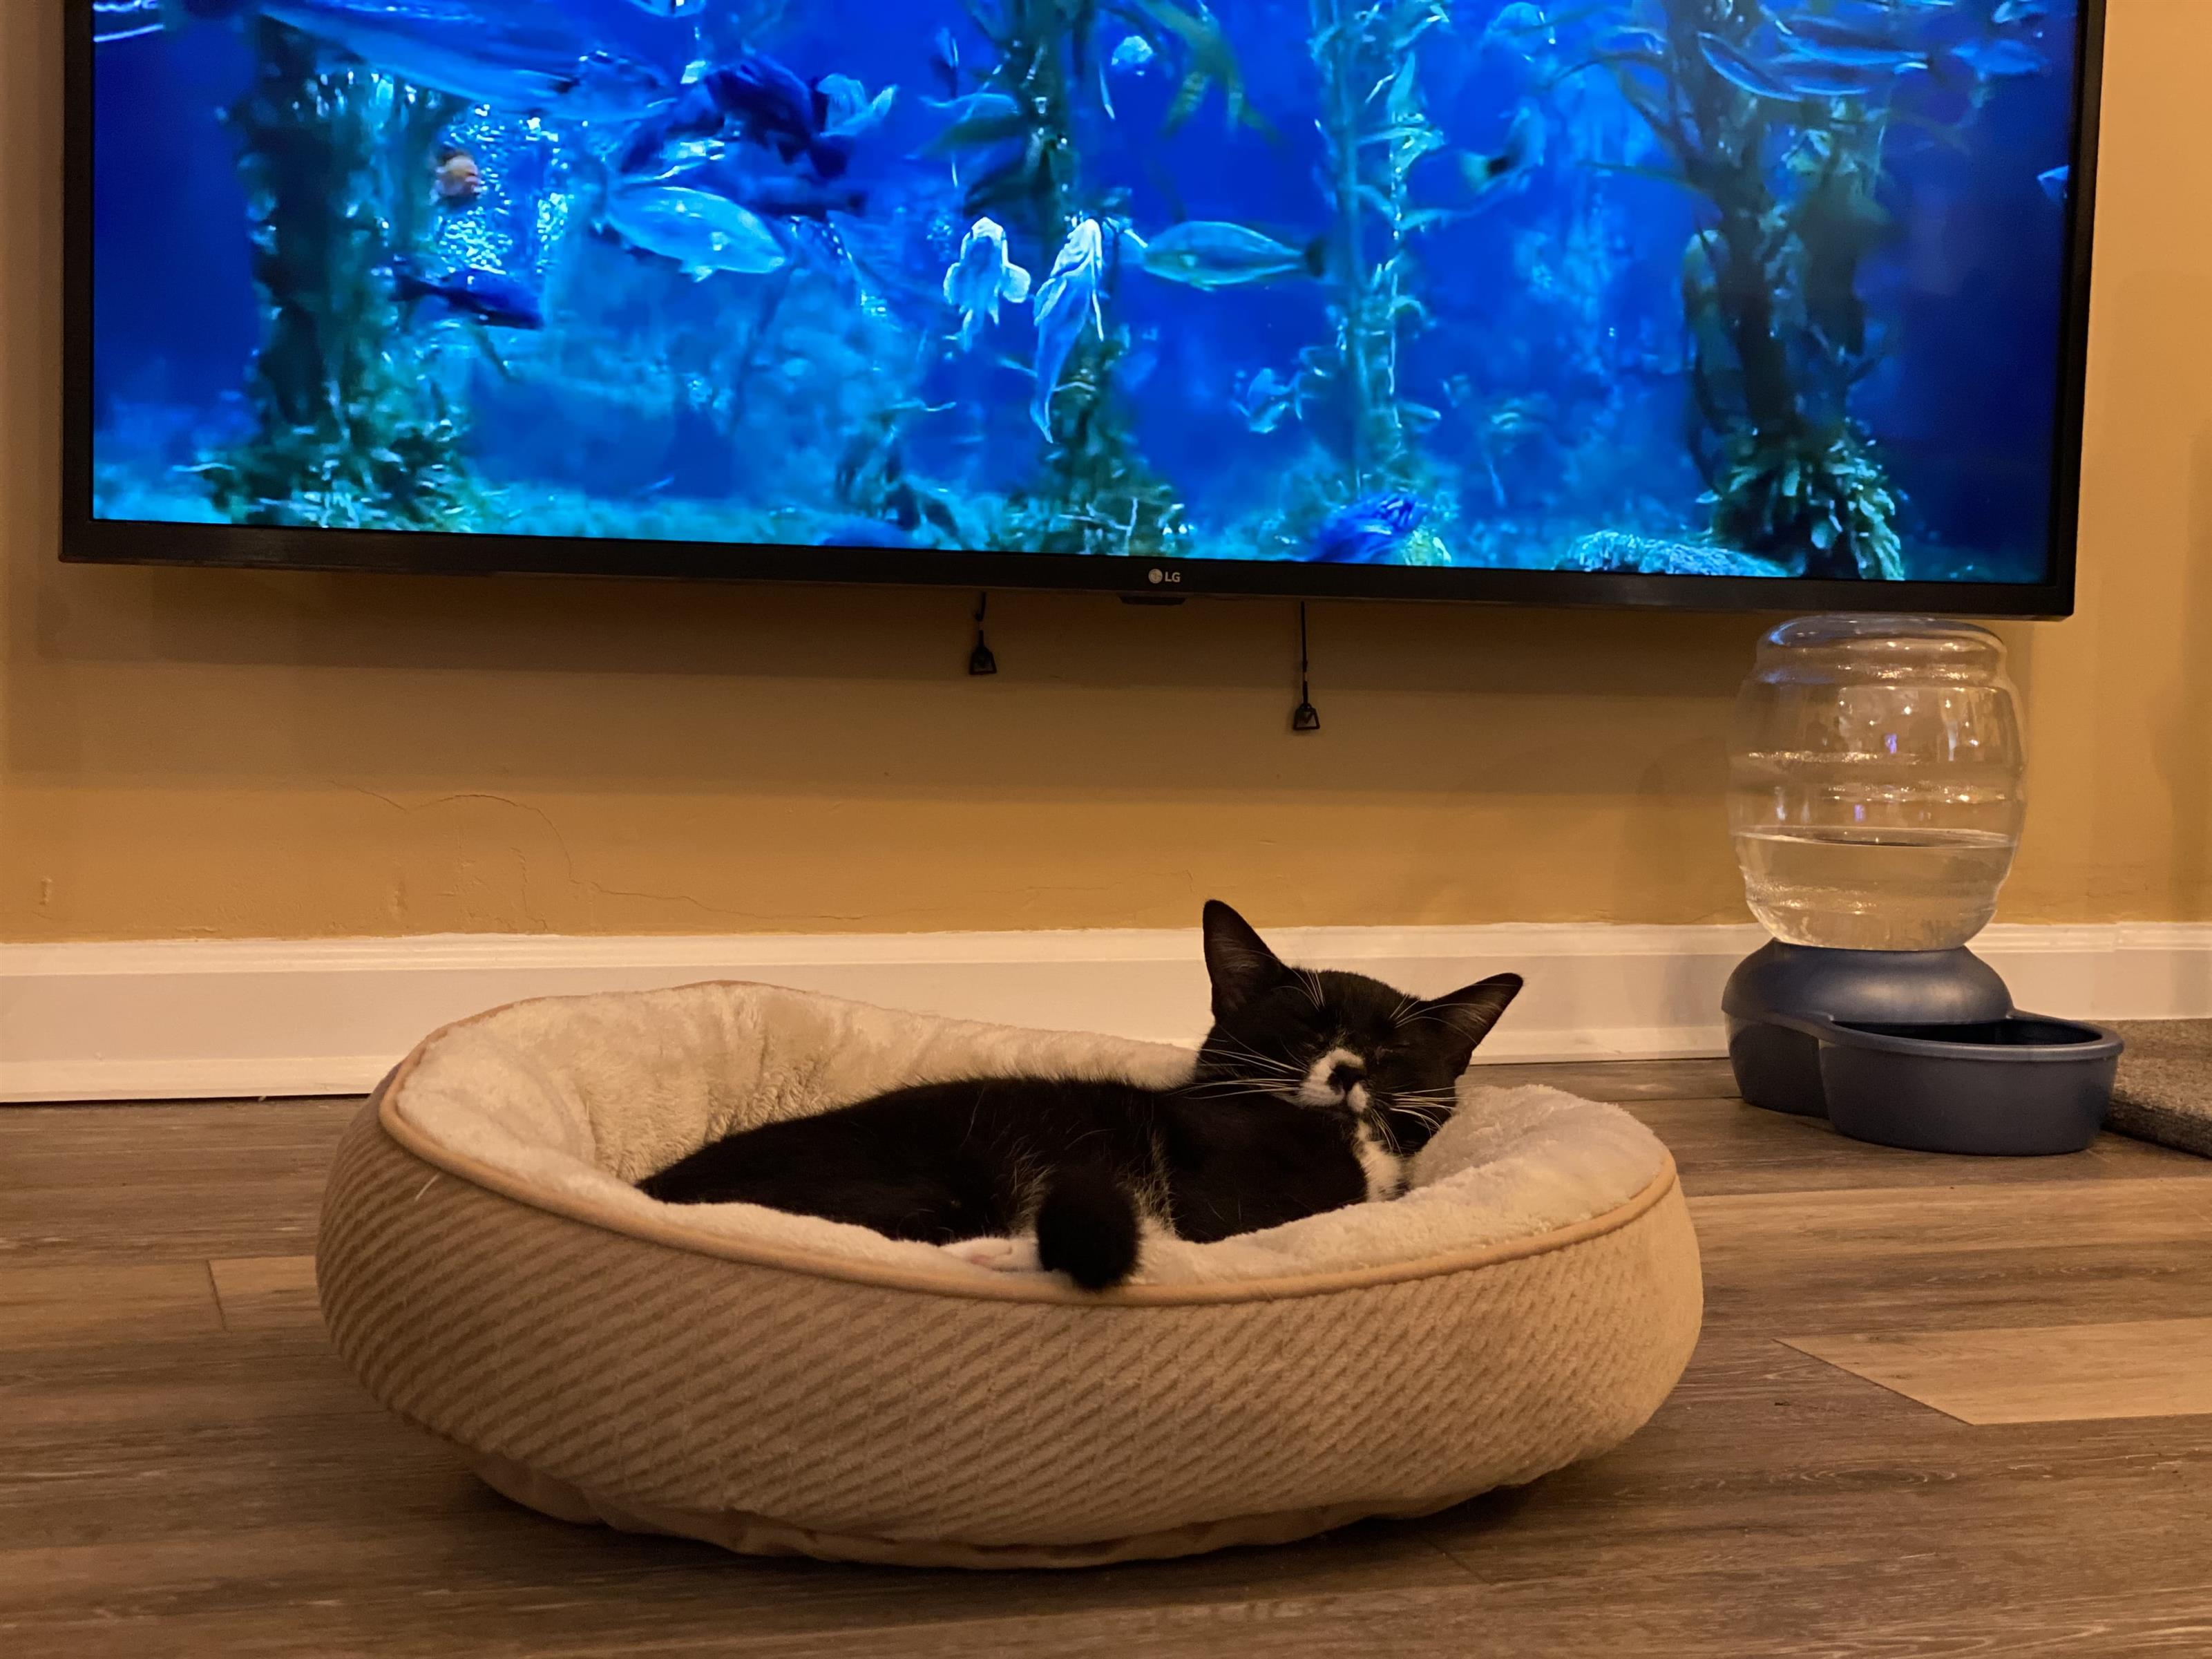 tuxedo cat sleeping in a cat bed in front of a tv